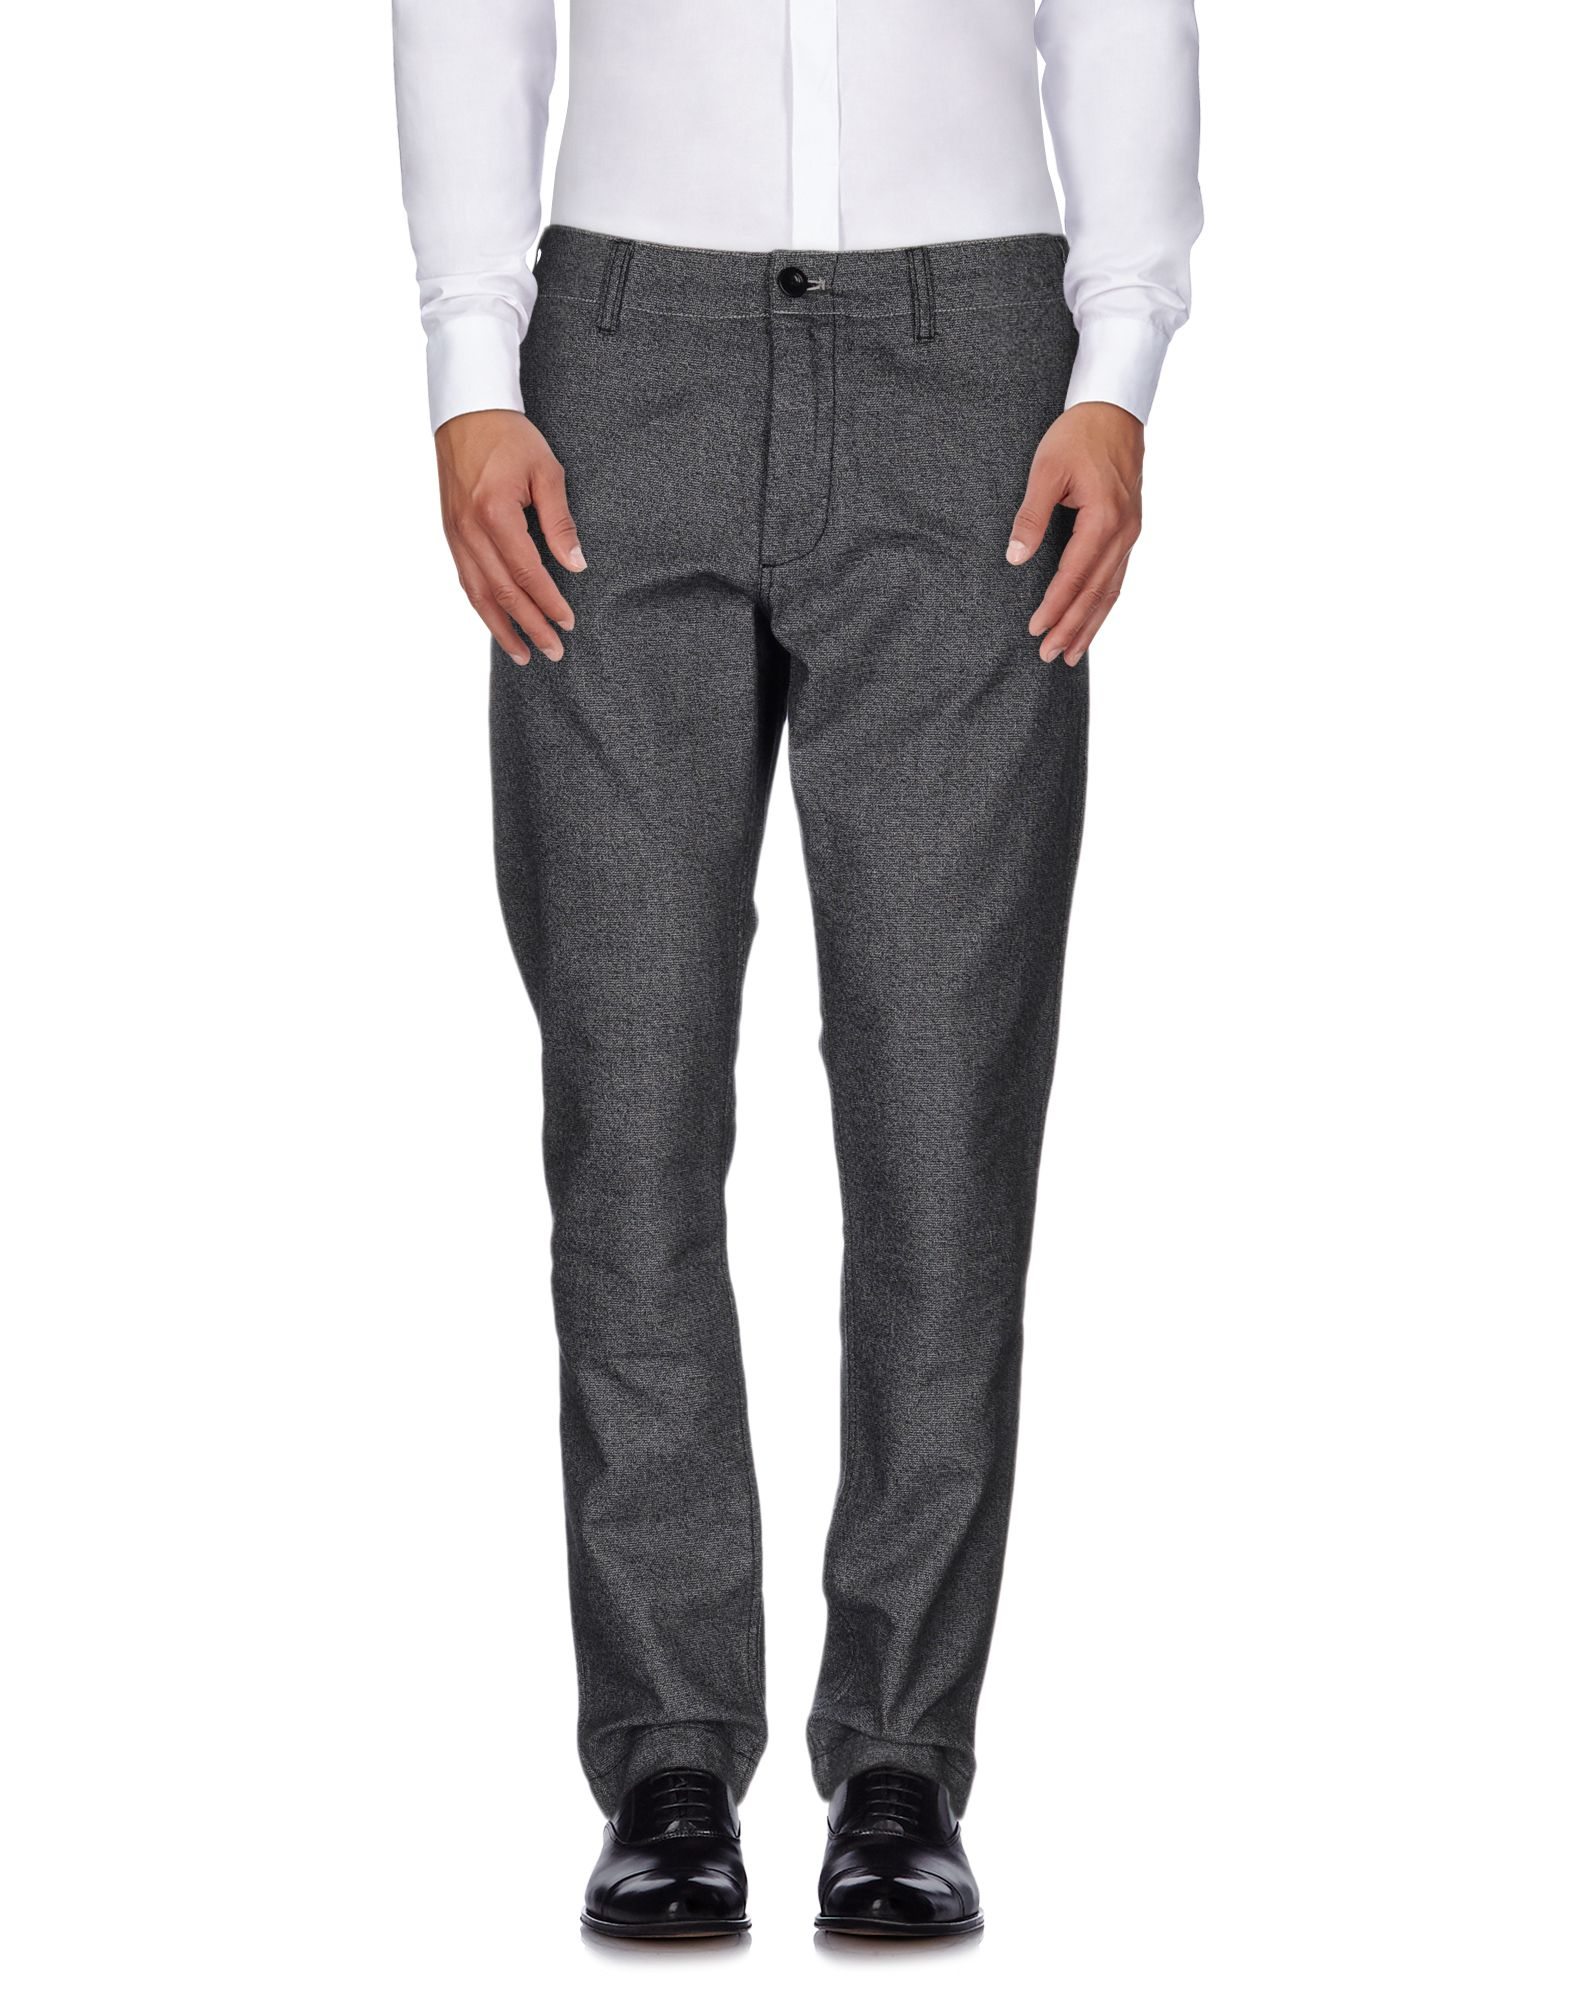 RED EAR BY PAUL SMITH JEANS Casual pants